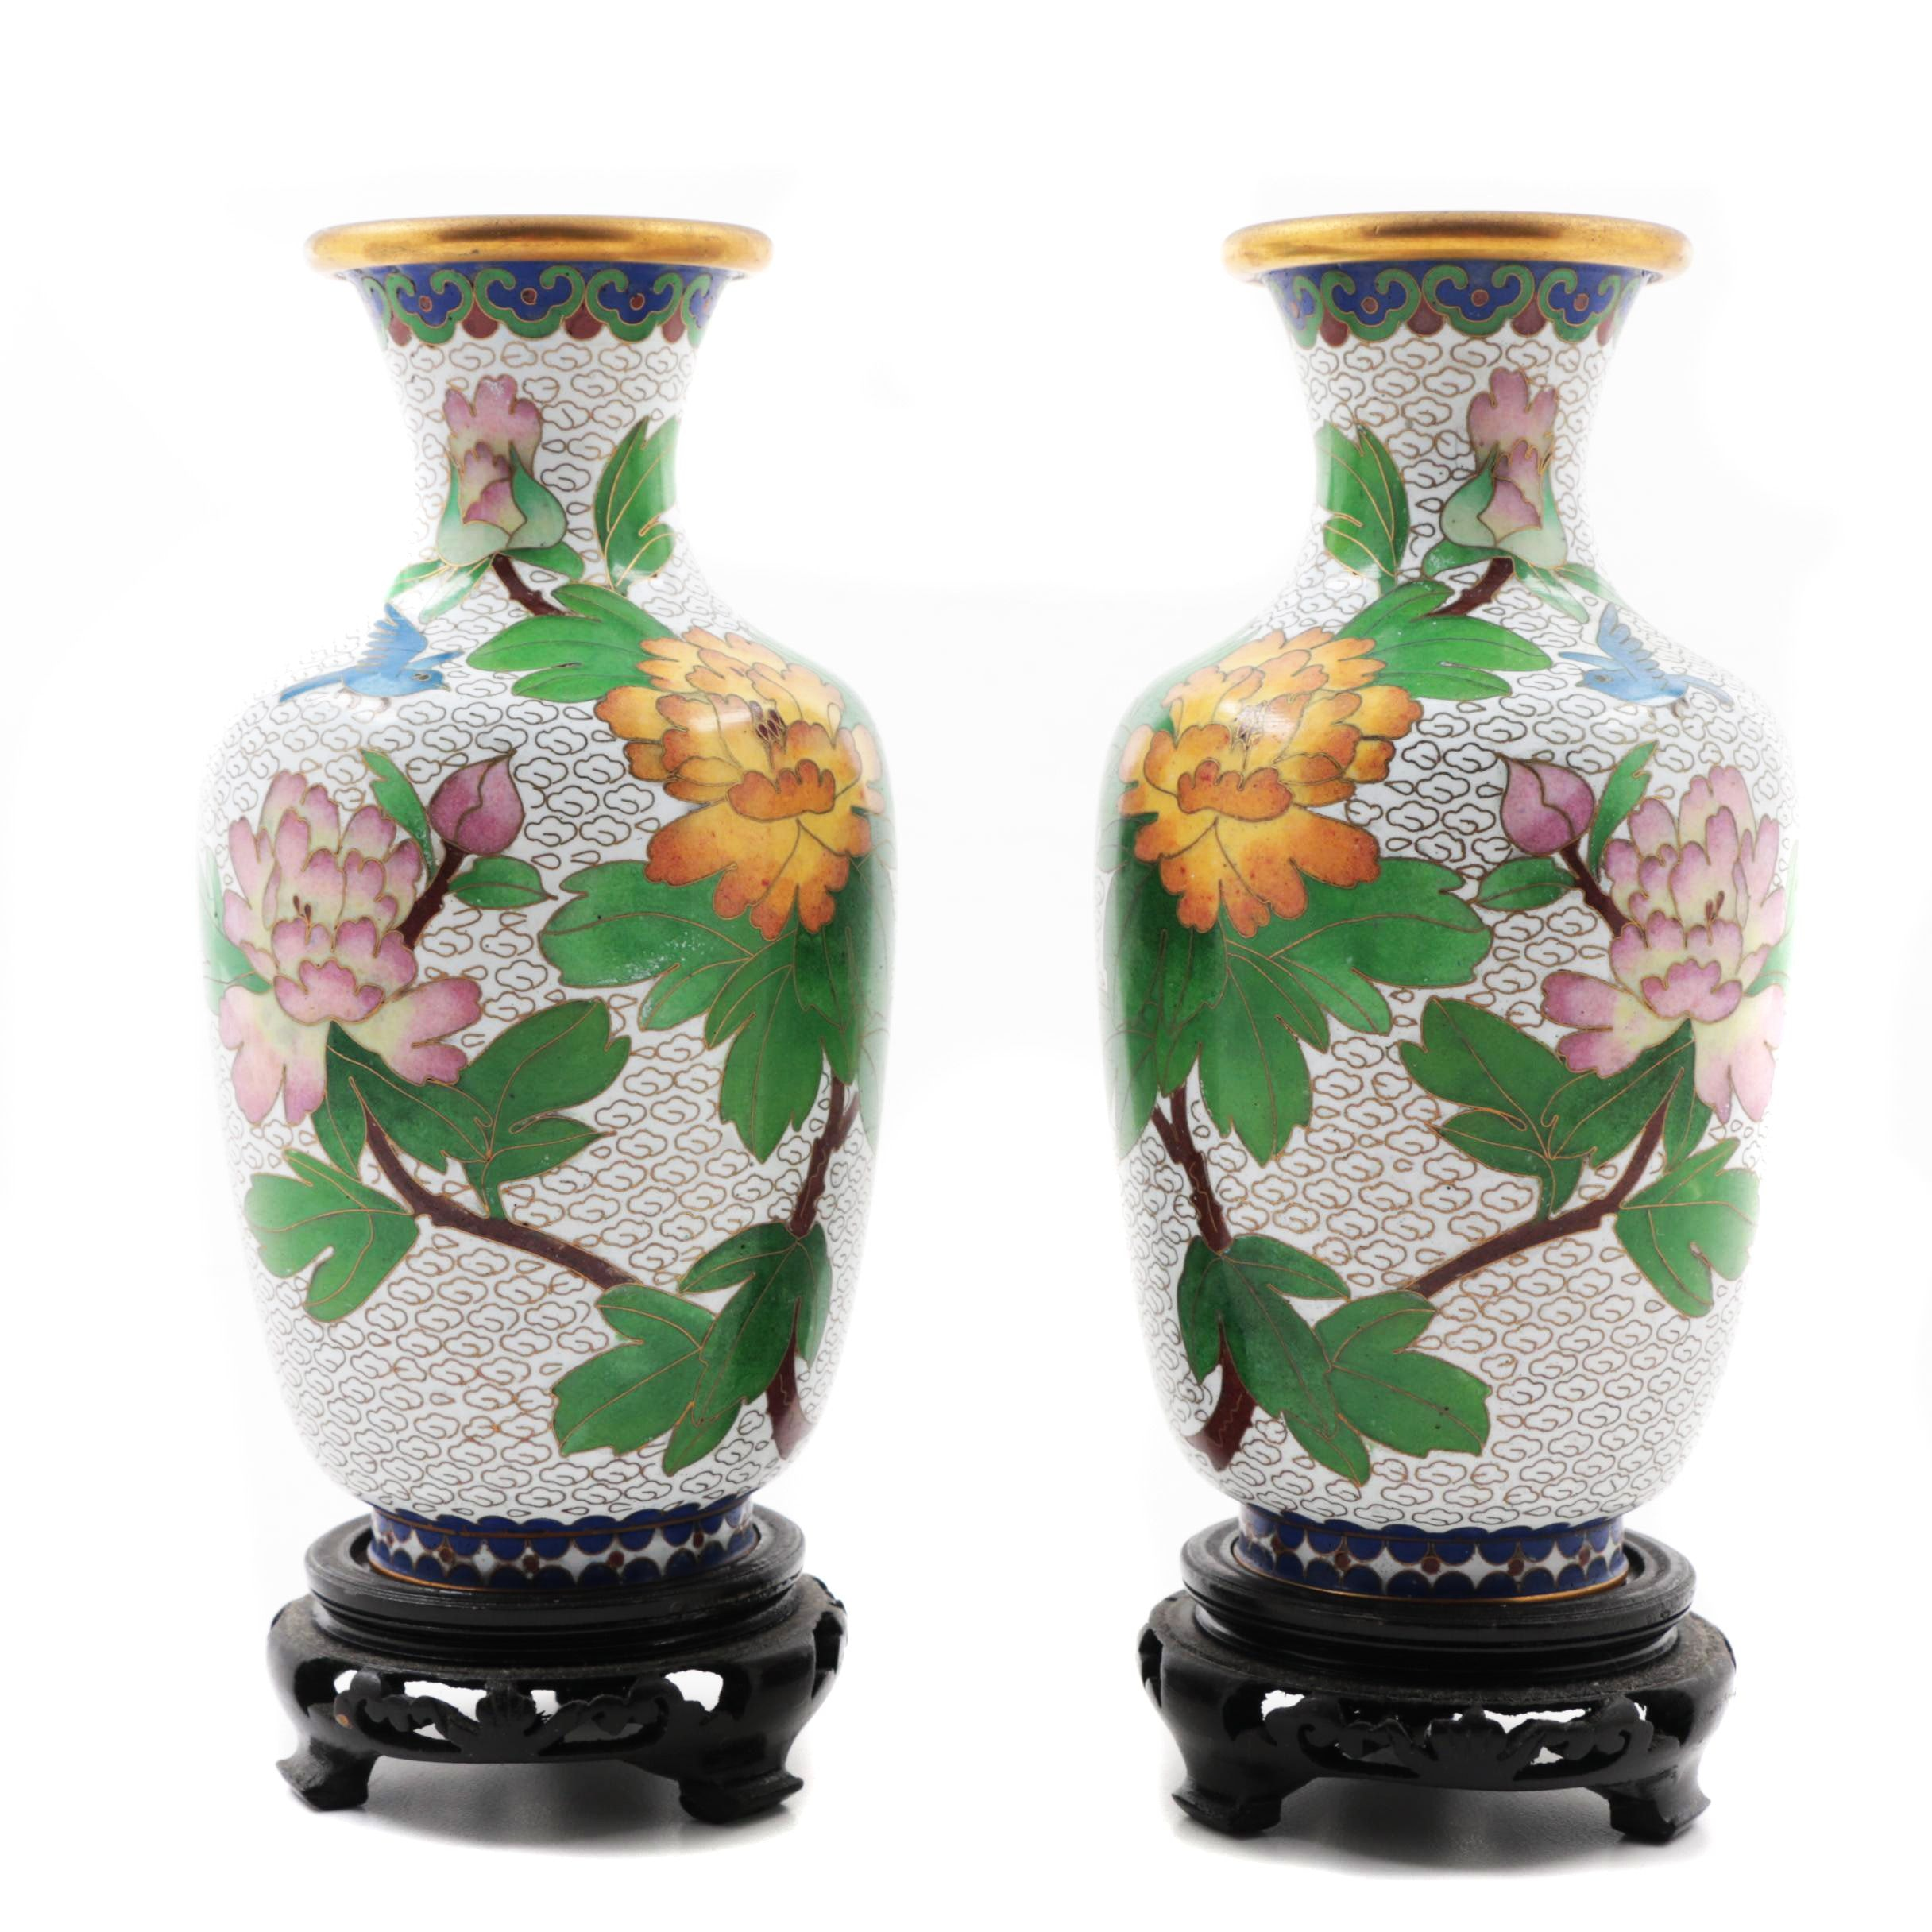 Chinese Jingfa Cloisonné Vases on Stands